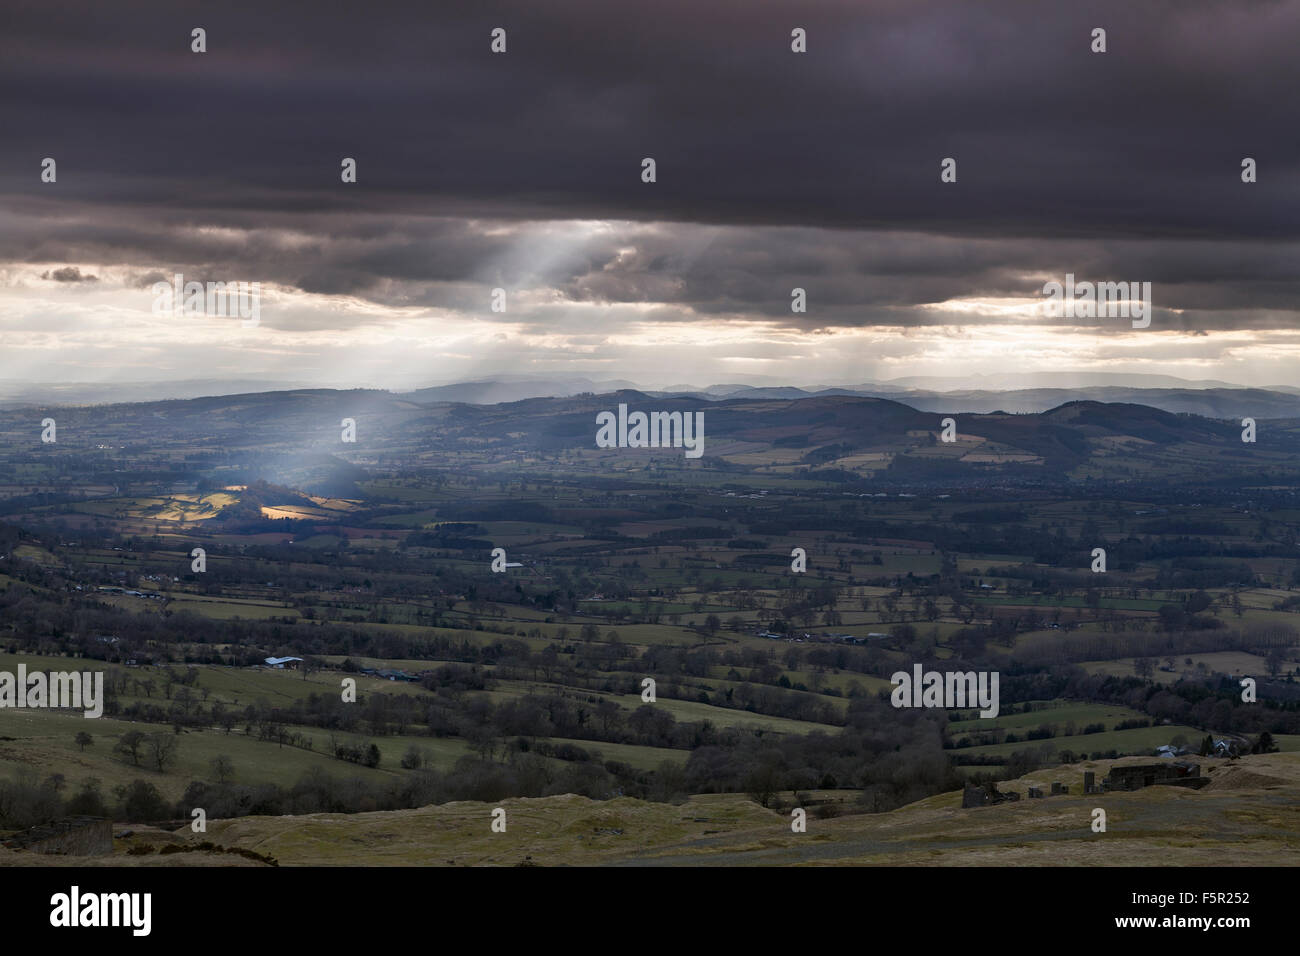 Crepuscular rays break through the clouds lighting up fields across Shropshire, from Clee Hill looking towards Wales Stock Photo